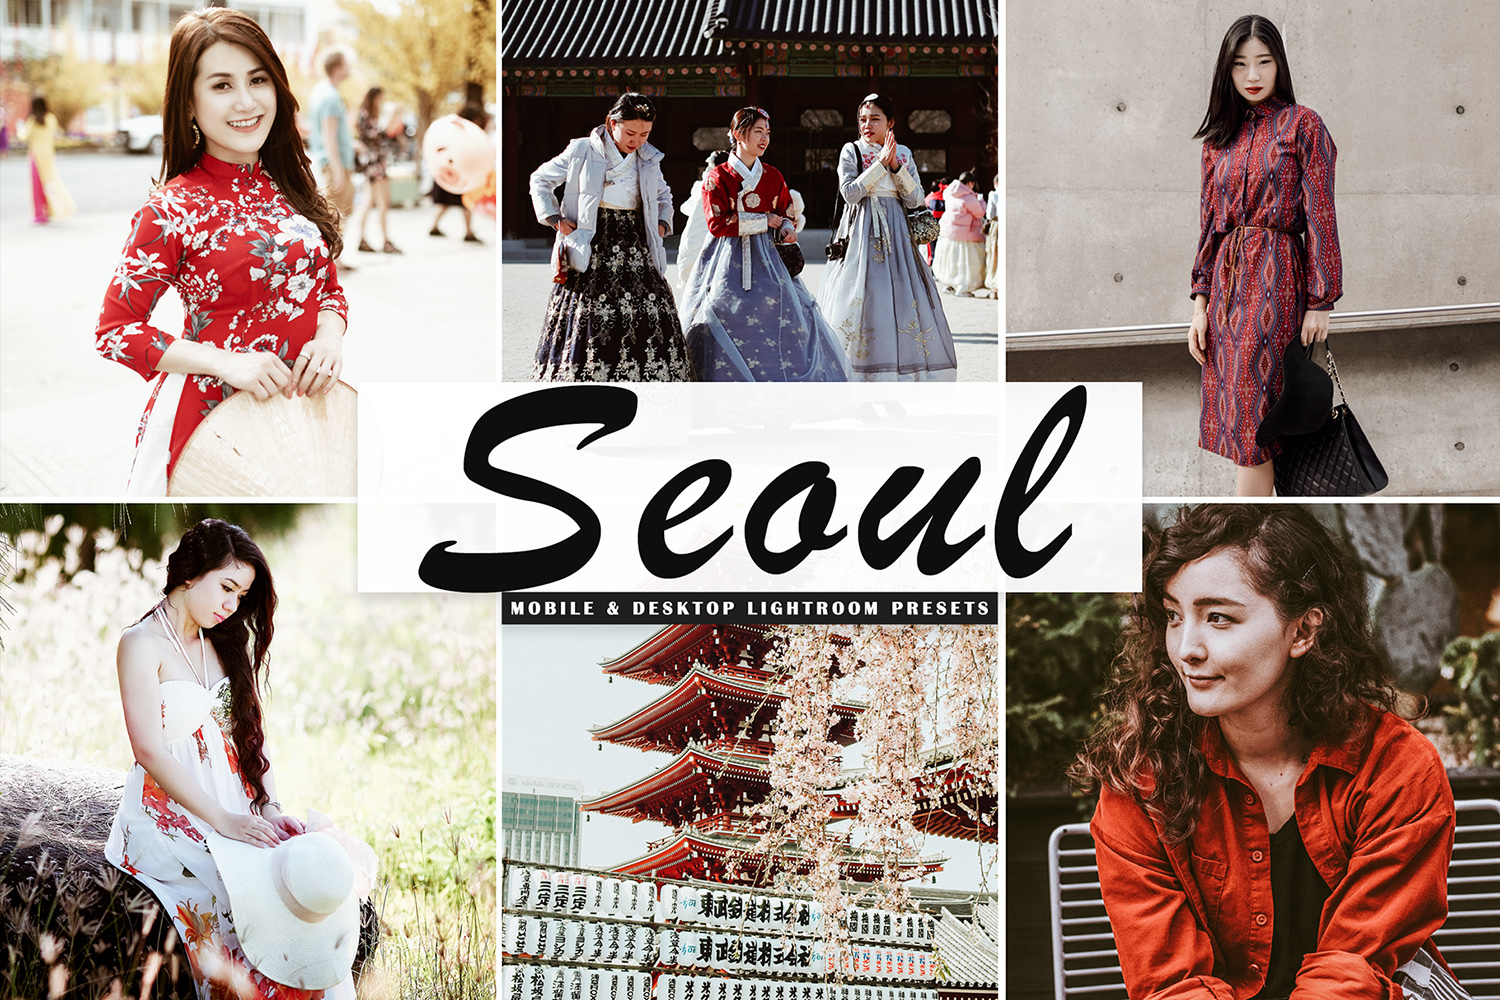 Seoul Mobile & Desktop Lightroom Presets example image 1